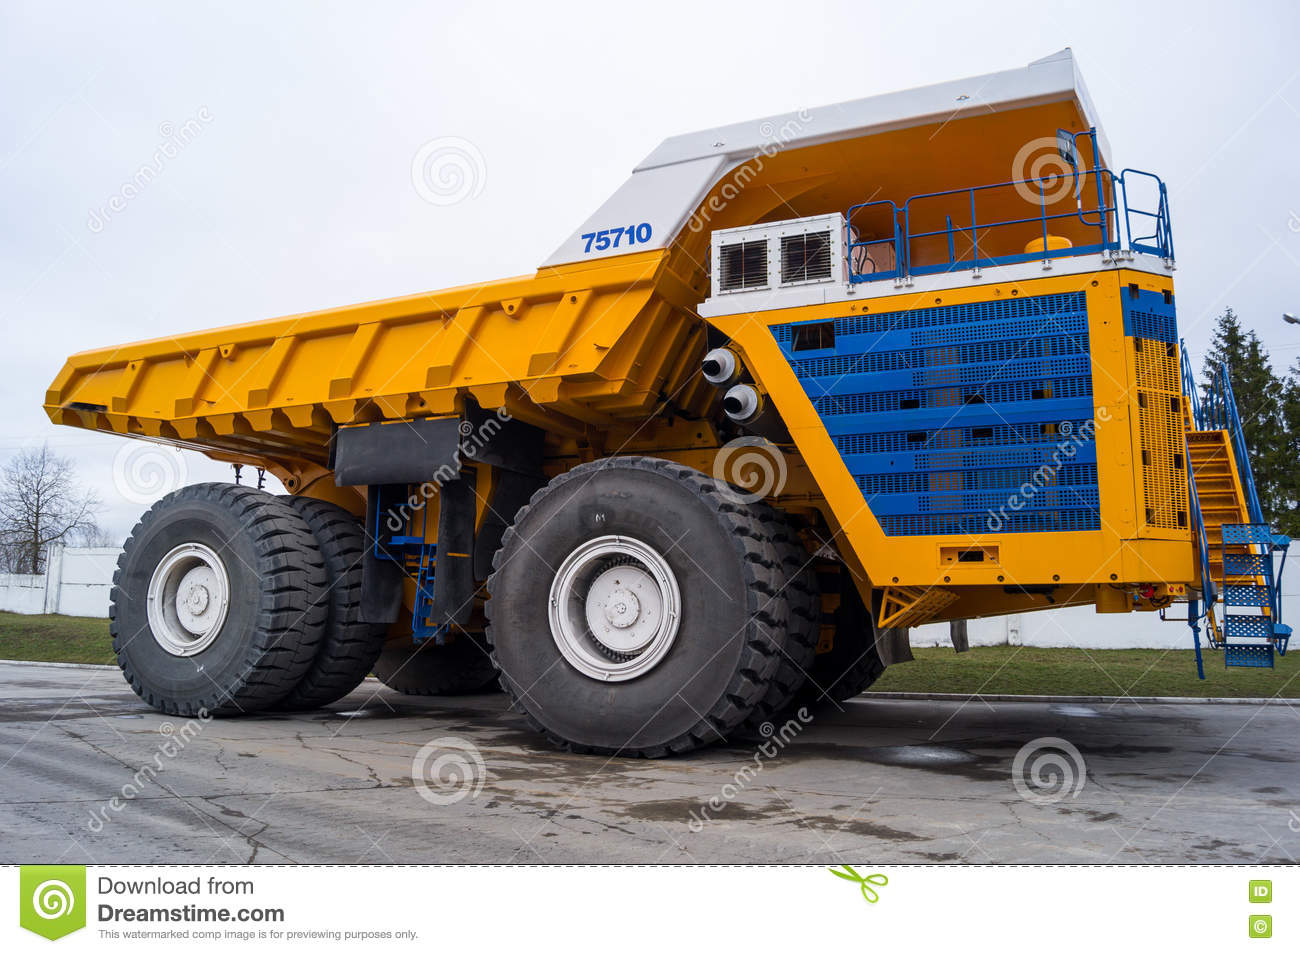 Background belarus belaz dump industrial large mining truck